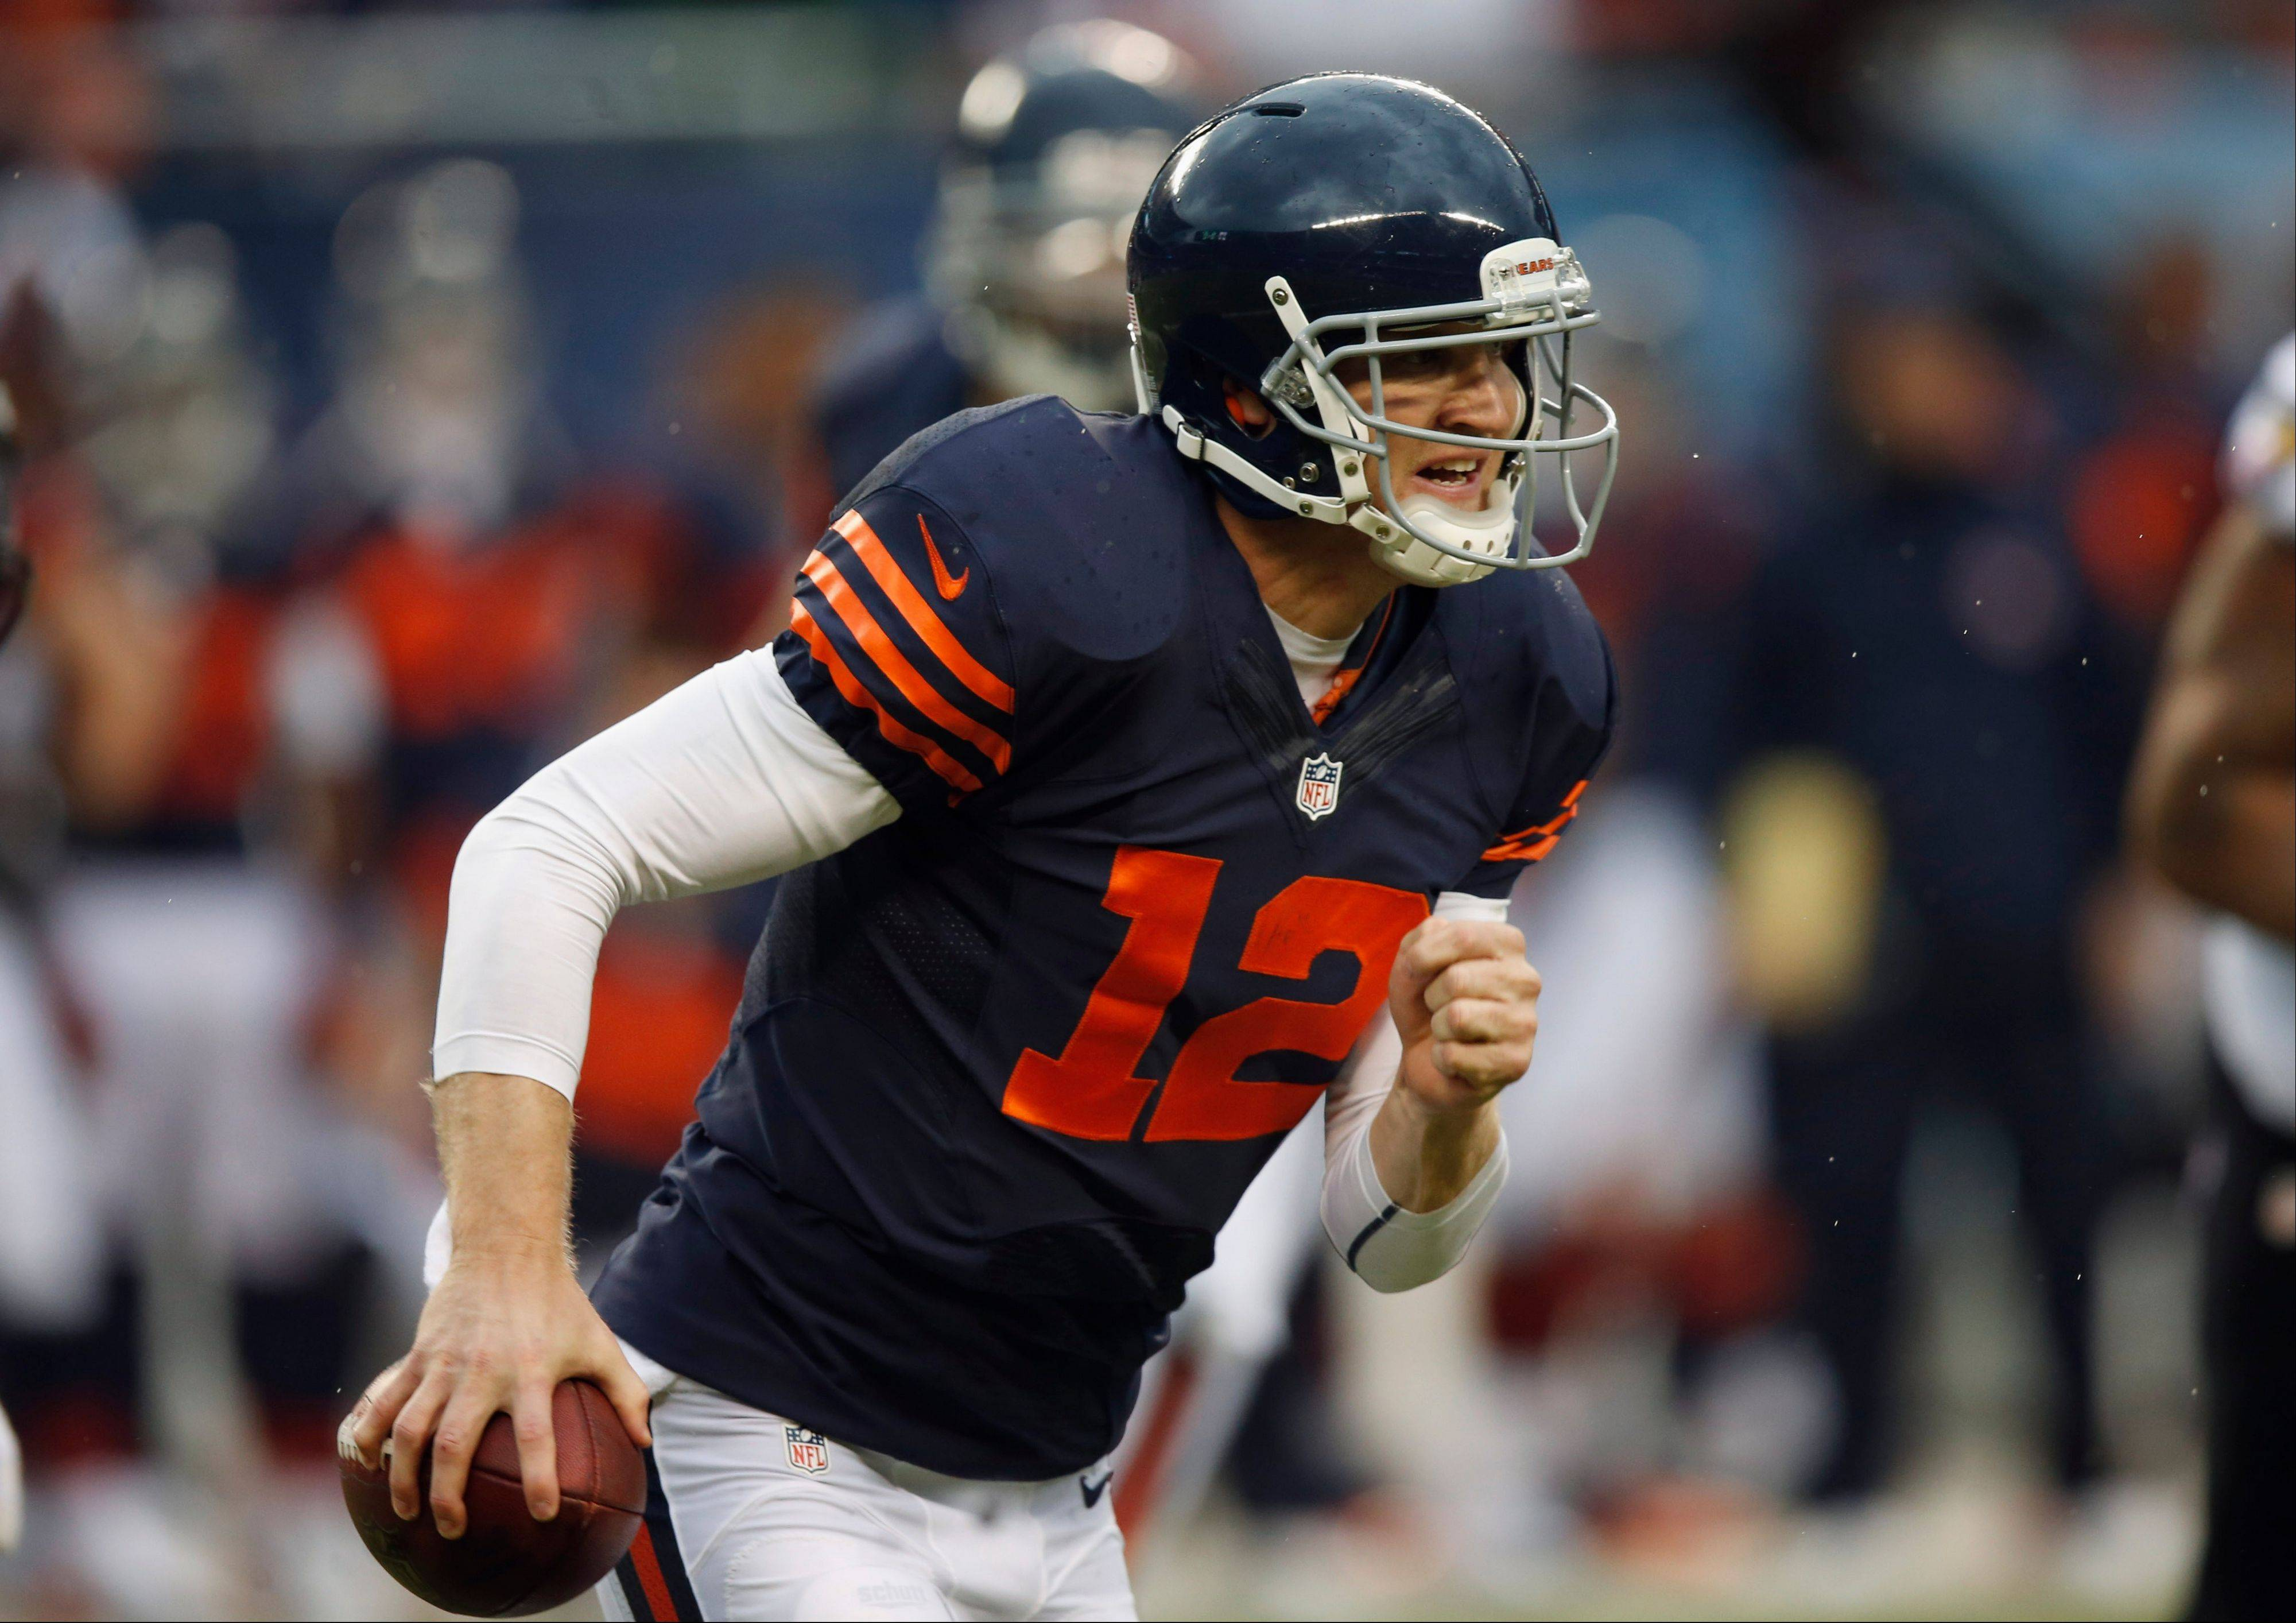 Josh McCown (12) scrambles during the first half of an NFL football game against the Baltimore Ravens, Sunday, Nov. 17, 2013, in Chicago.